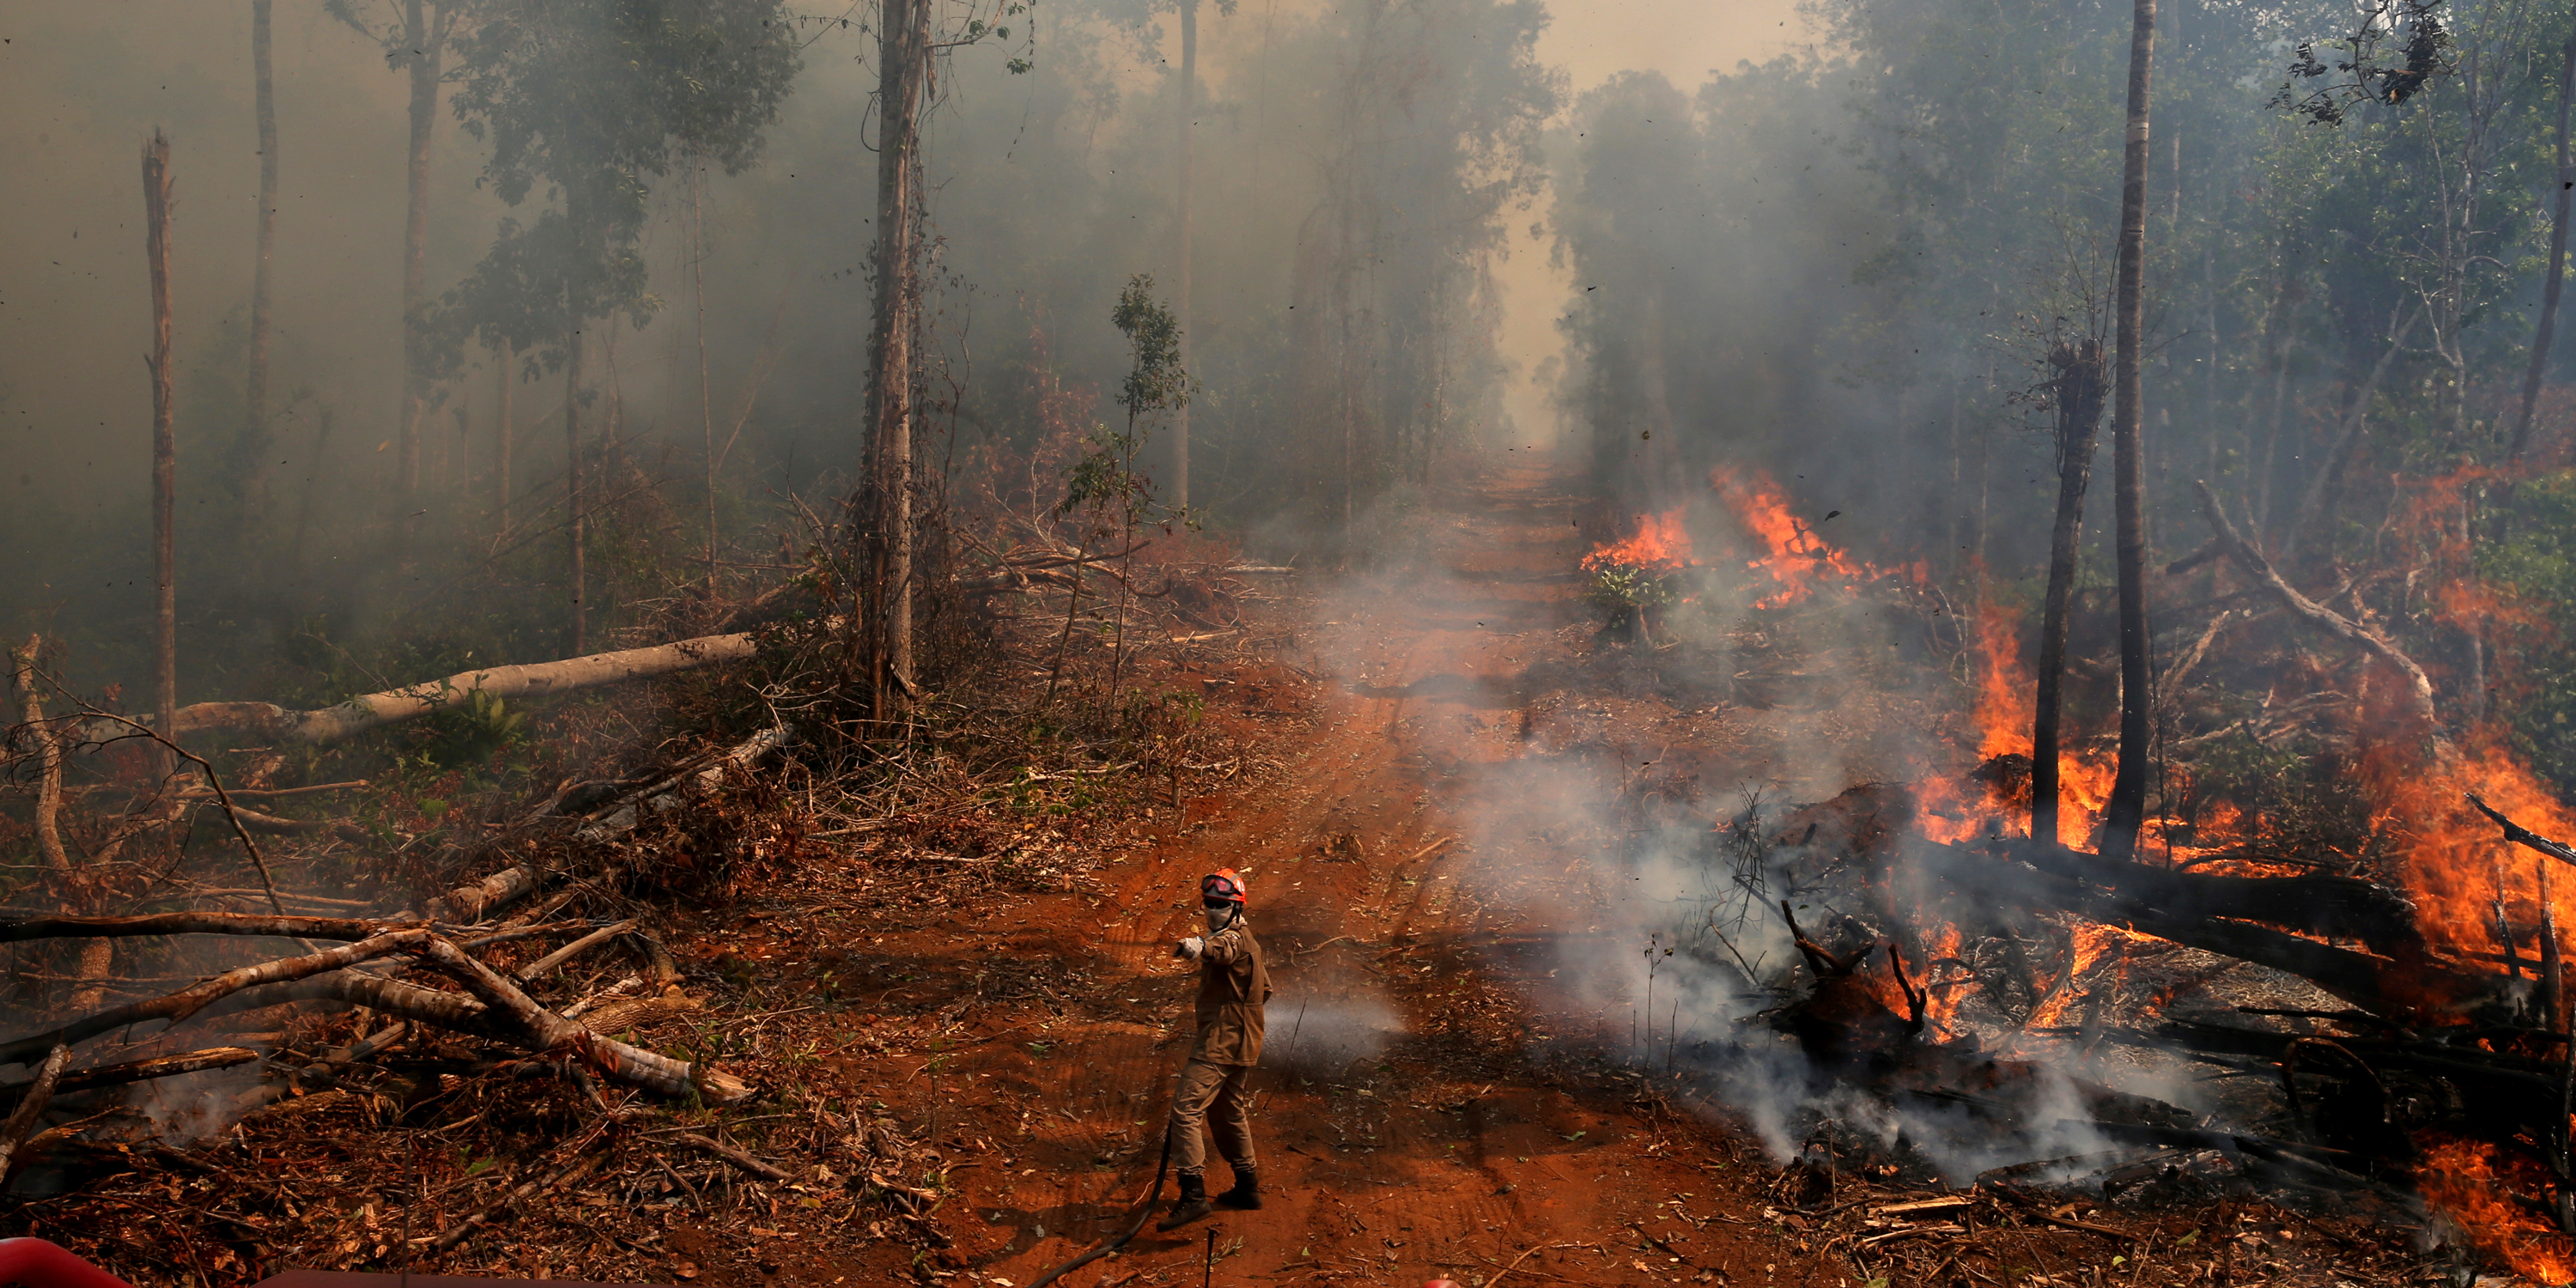 Inside the Lawless Frontier at the Heart of the Burning Amazon